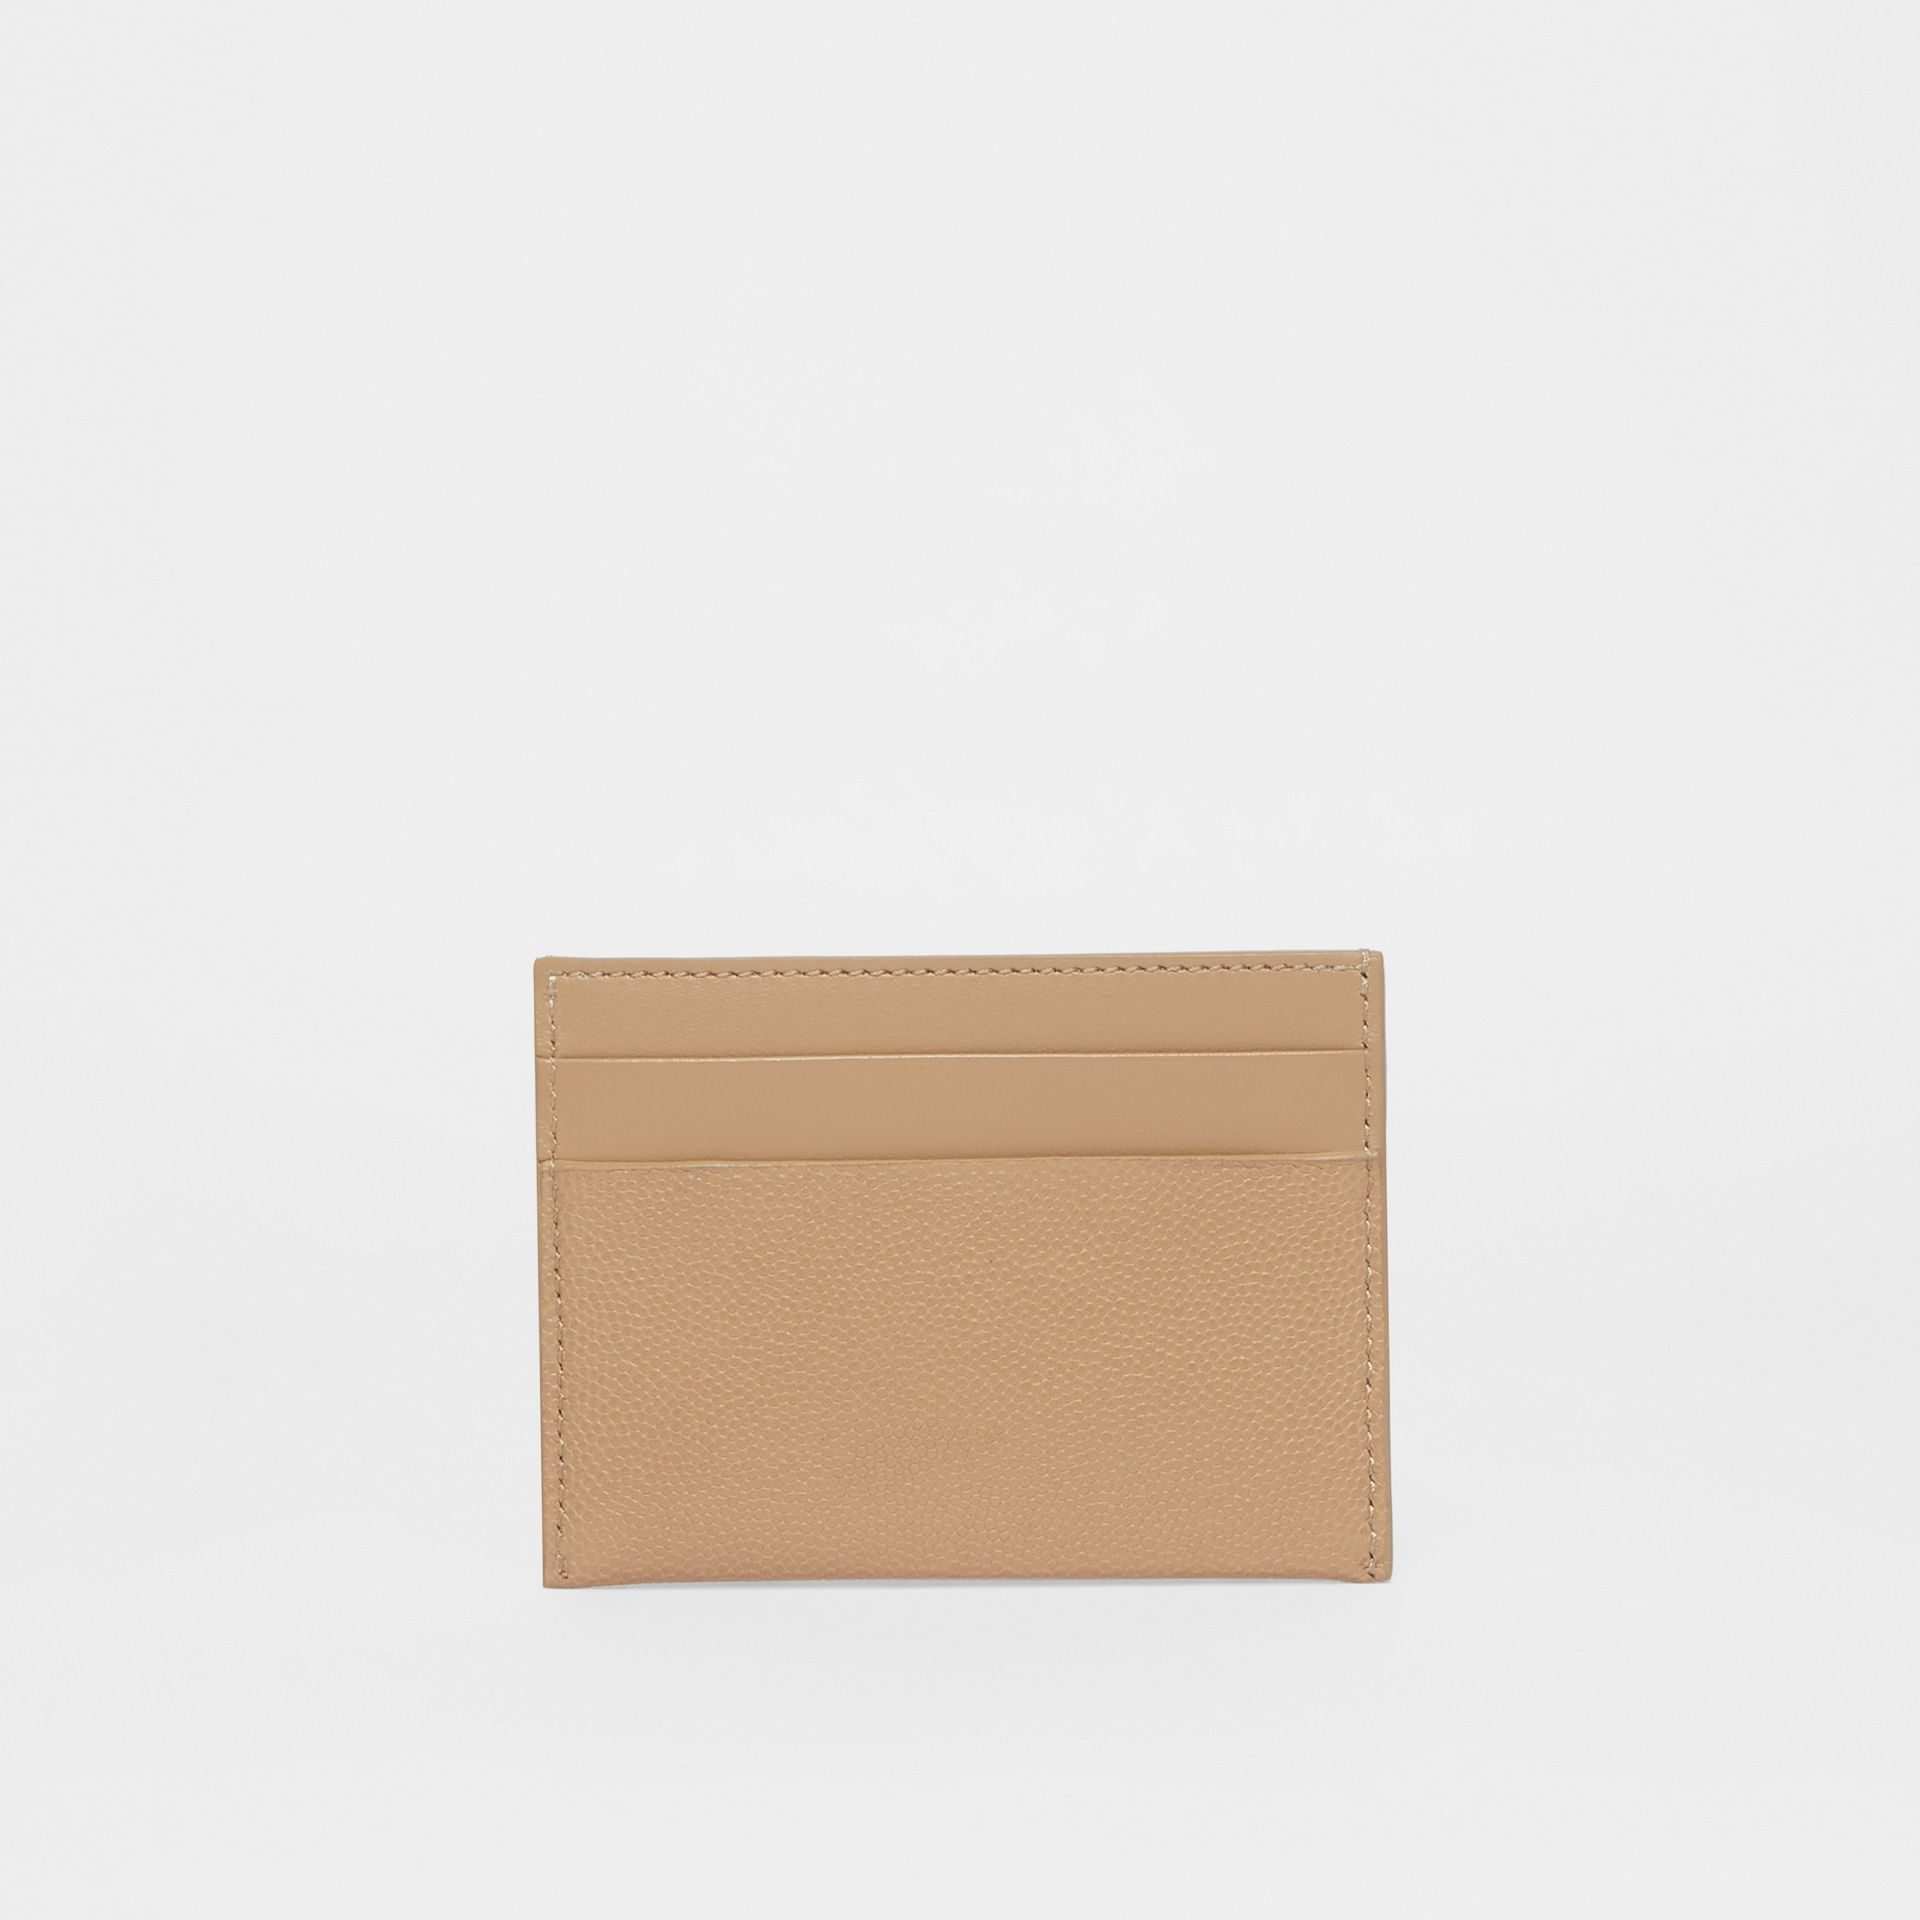 Monogram Motif Leather Card Case in Archive Beige - Women | Burberry - gallery image 3